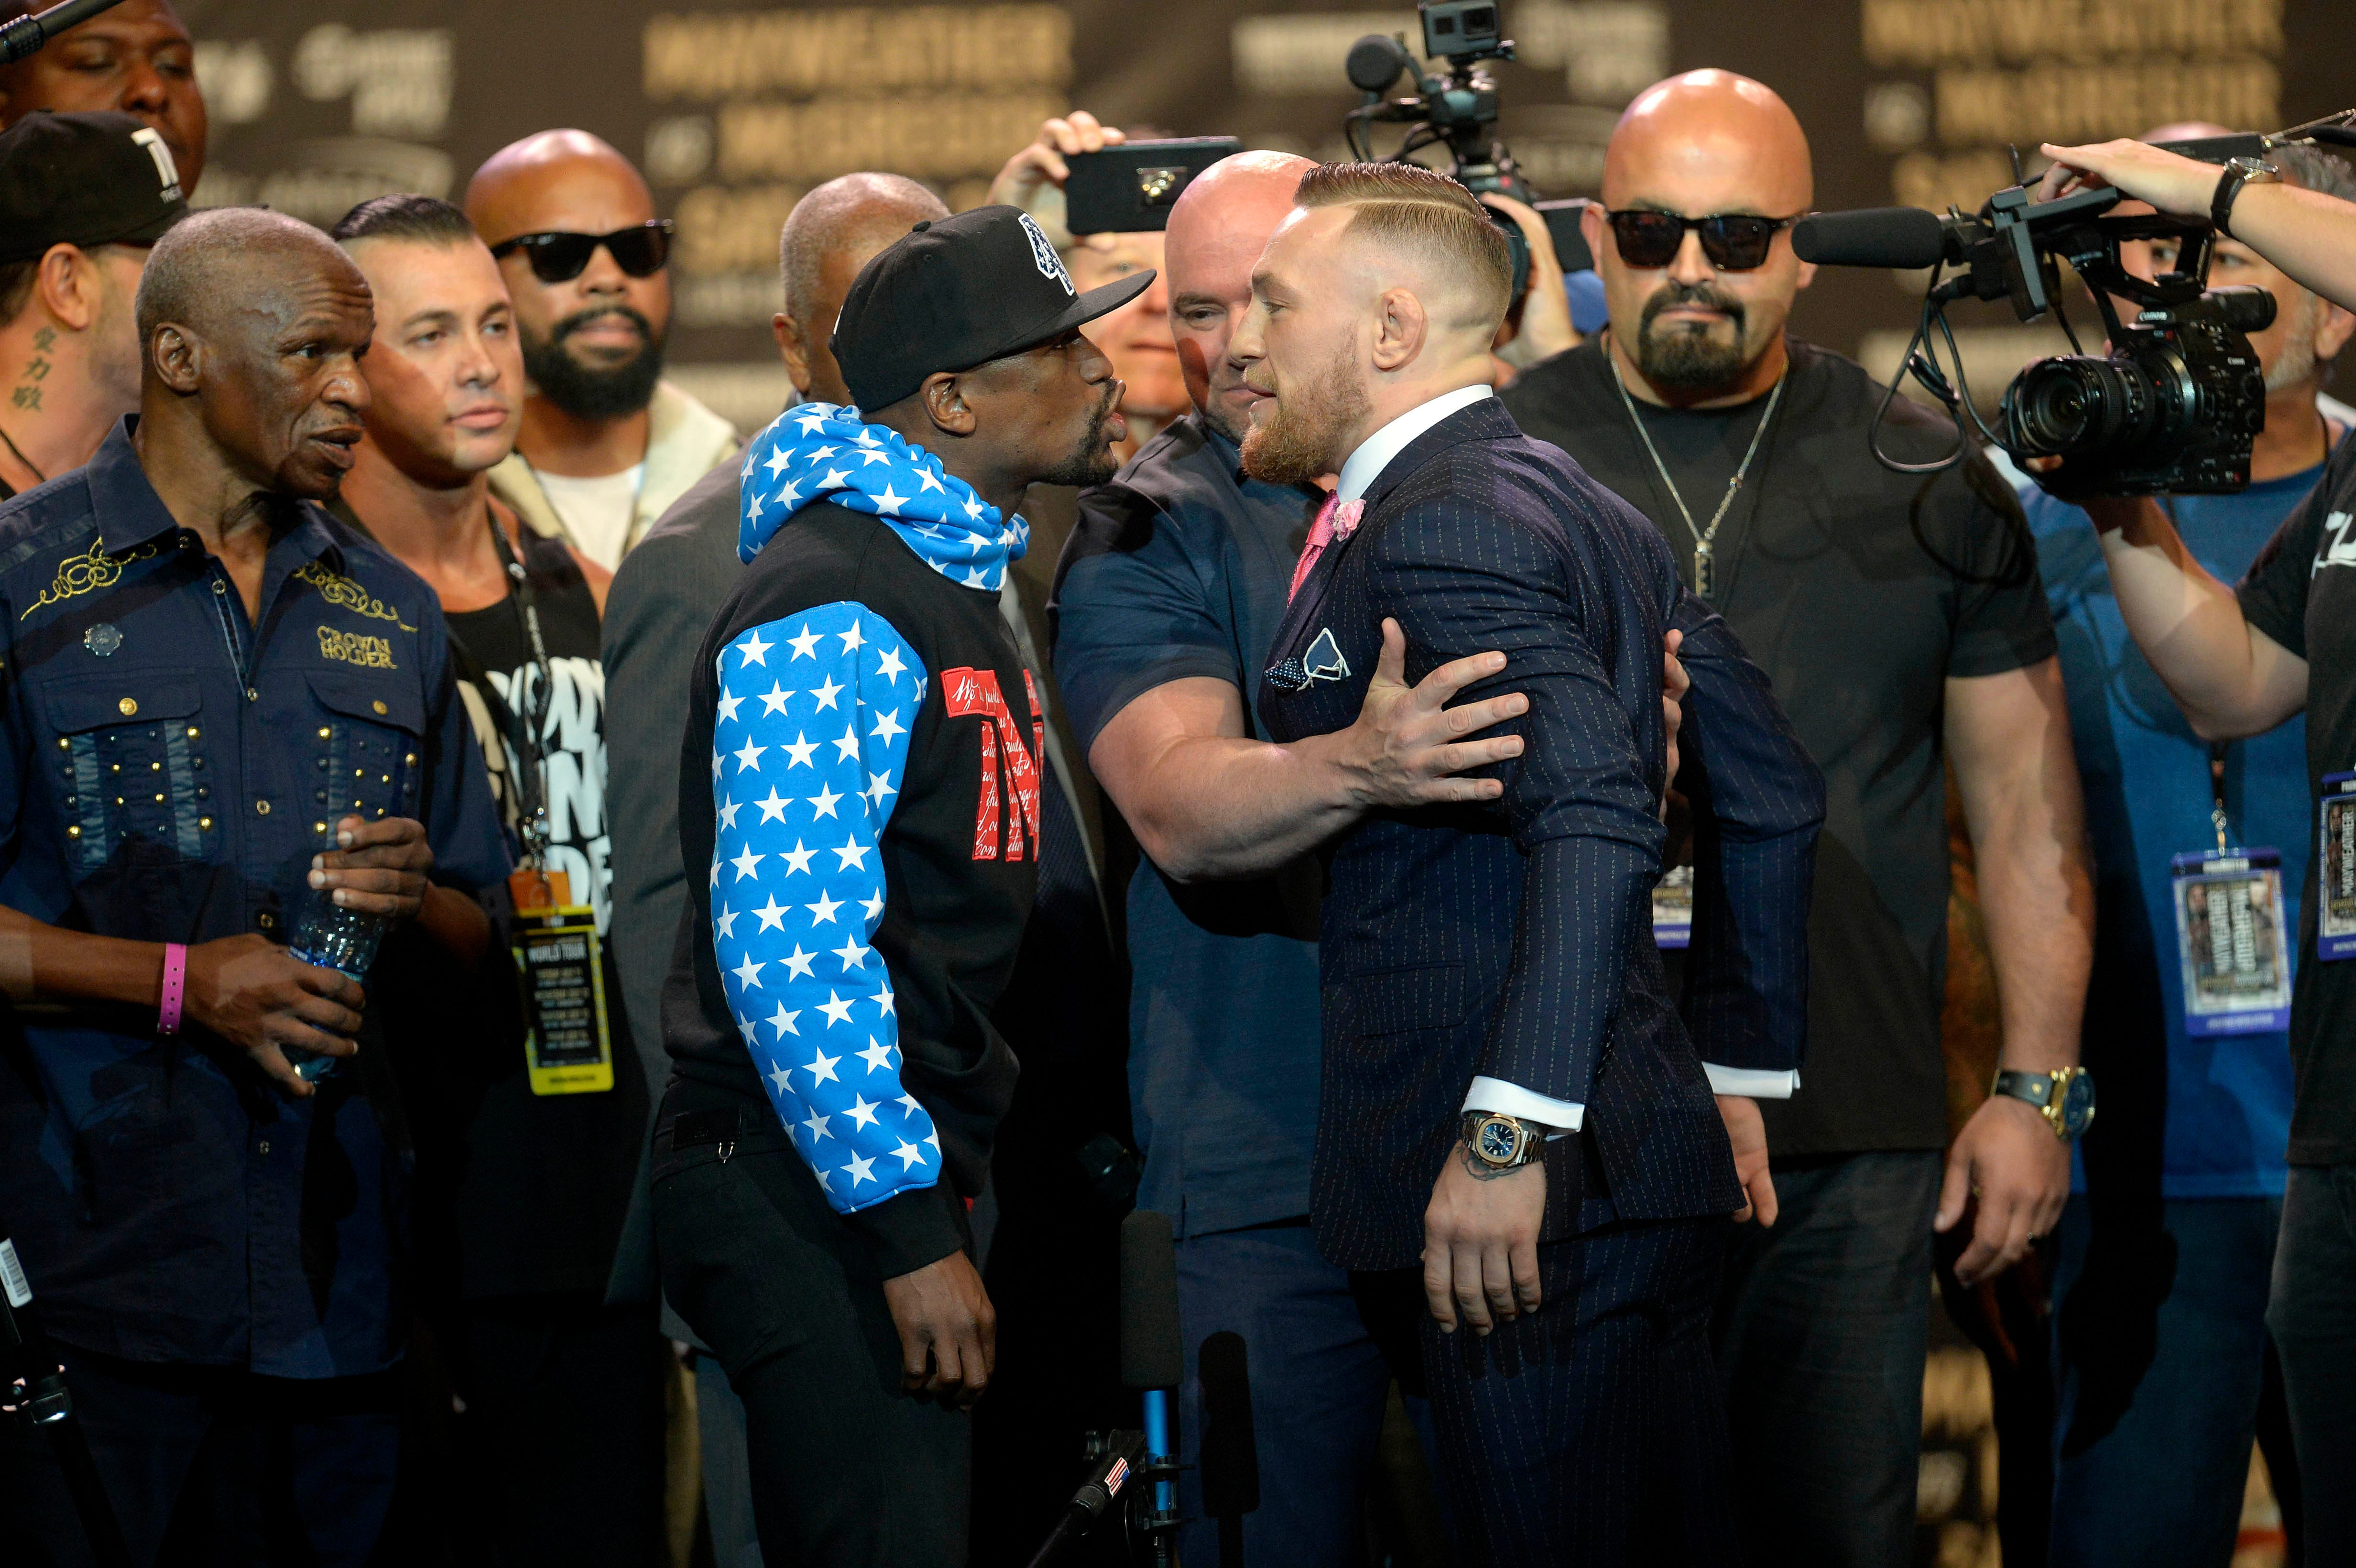 MacGregor and Mayweather staged a wild show. Just madness